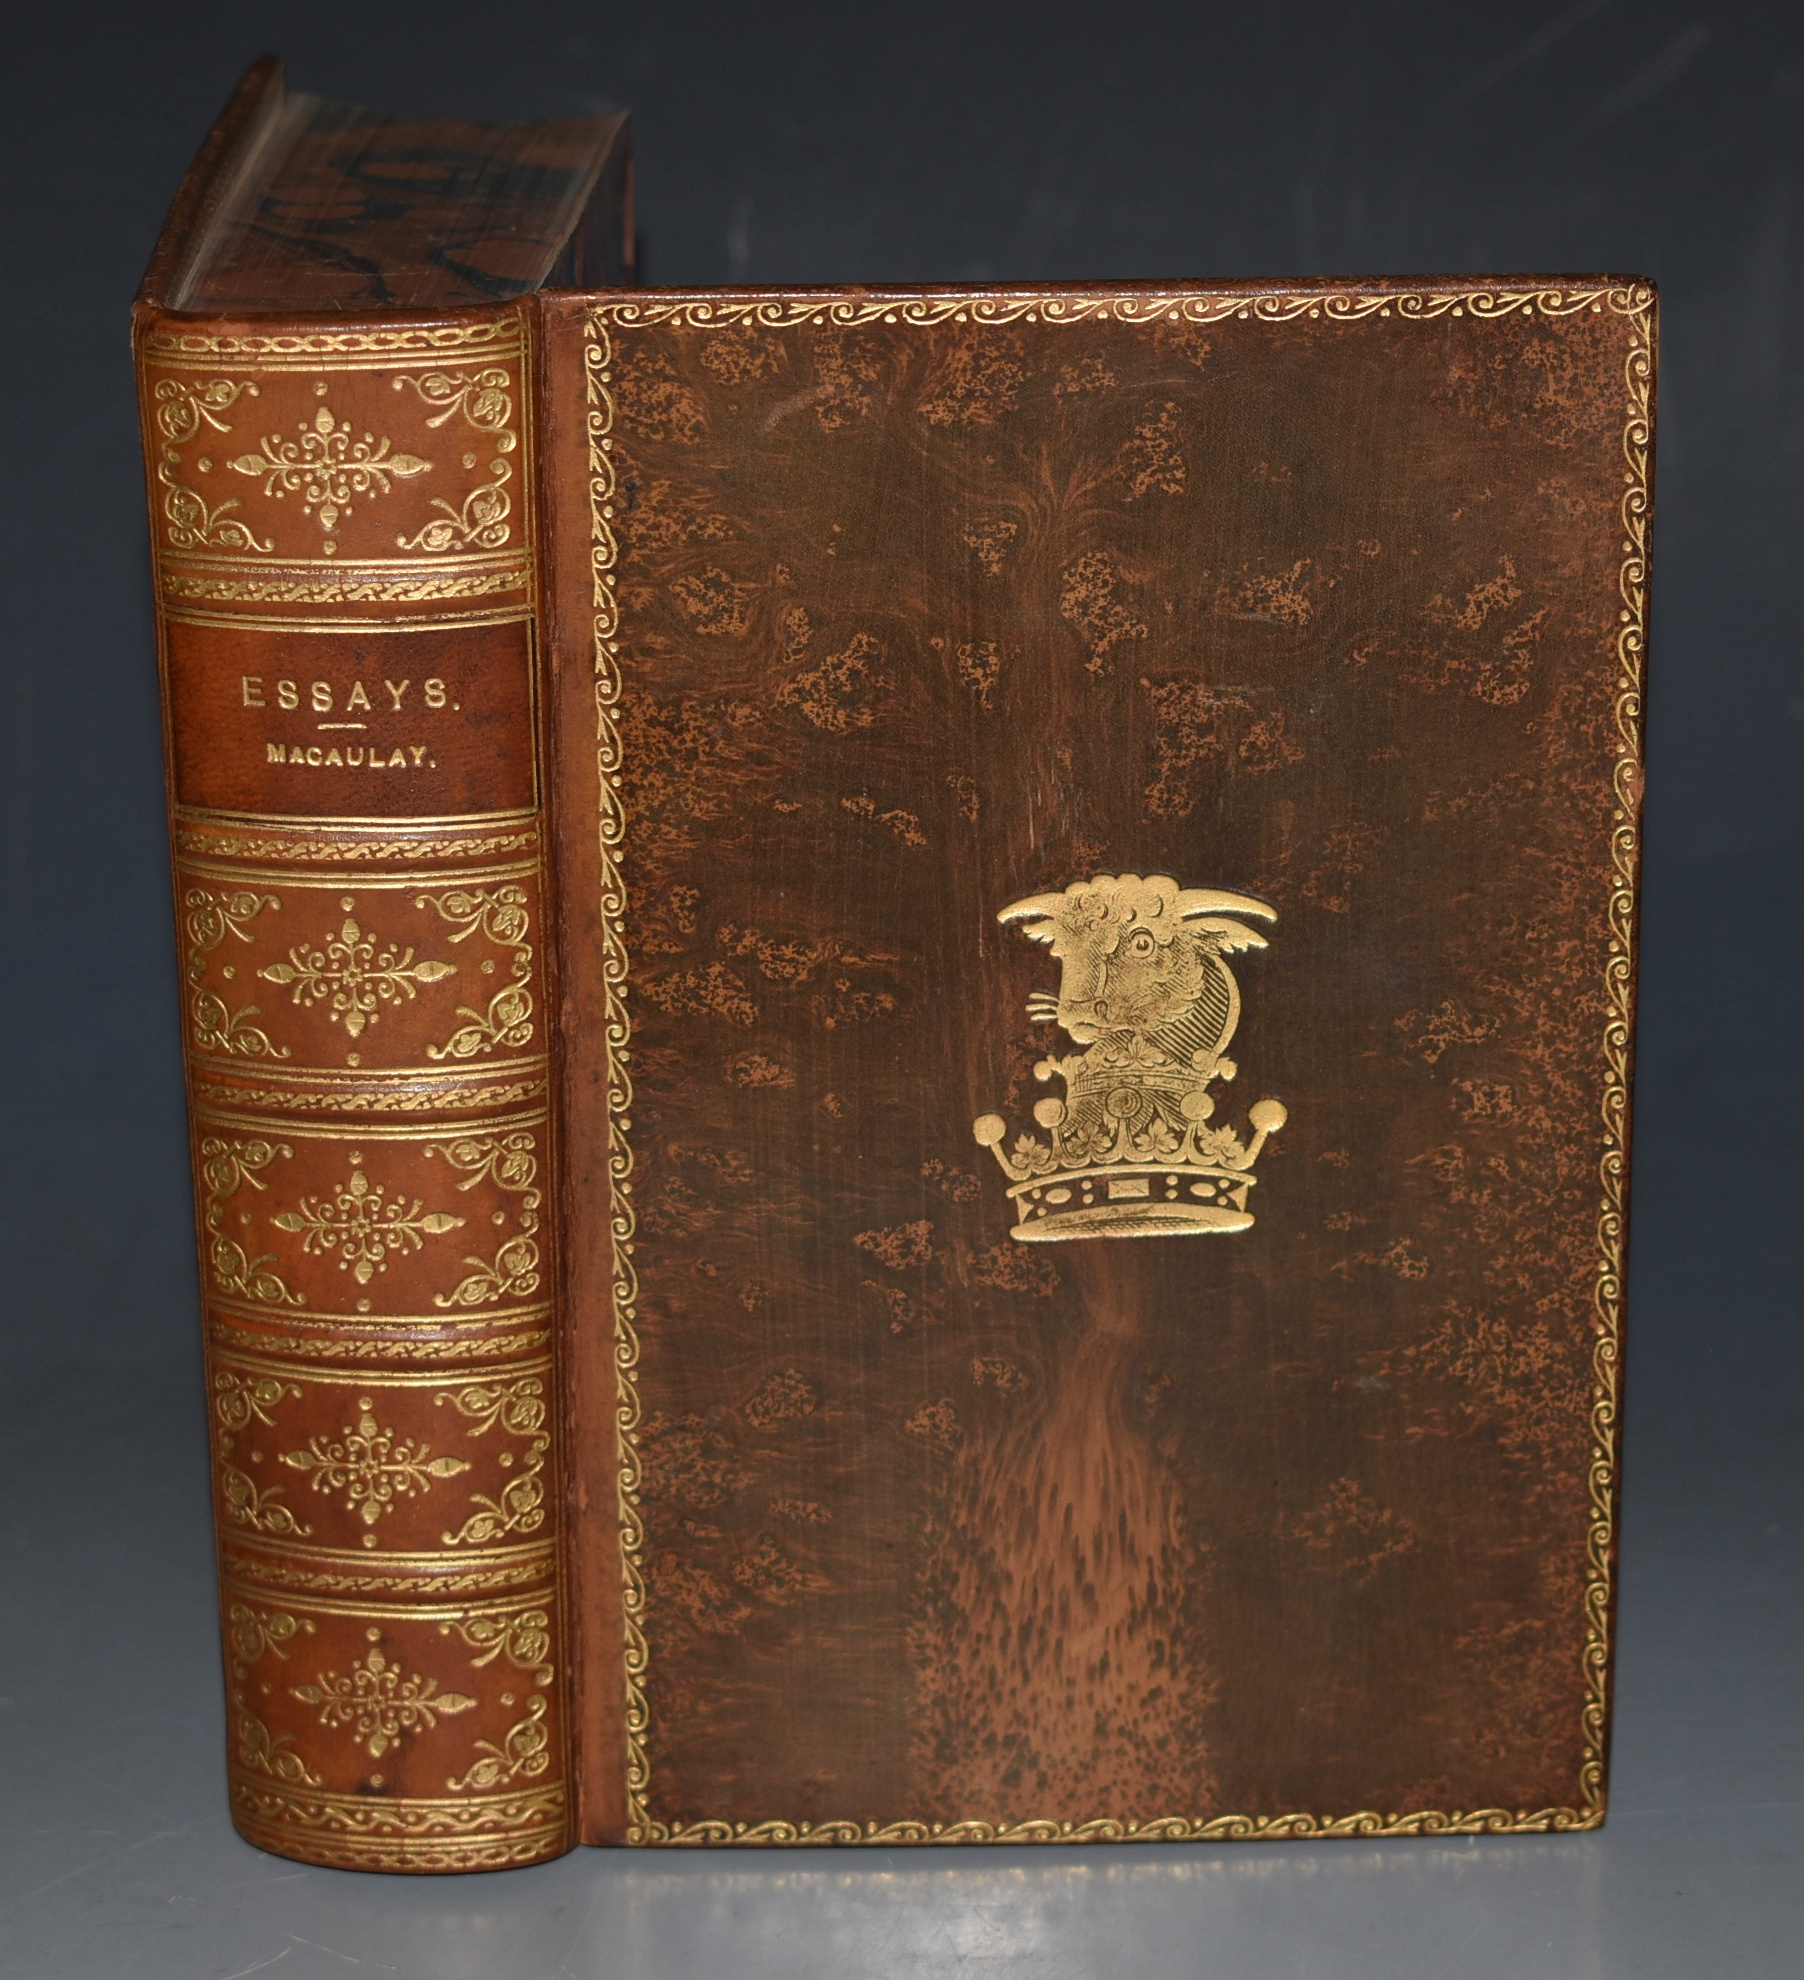 Image for Lord Macaulay's Essays and Lays of Ancient Rome. Popular Edition. New Impression.